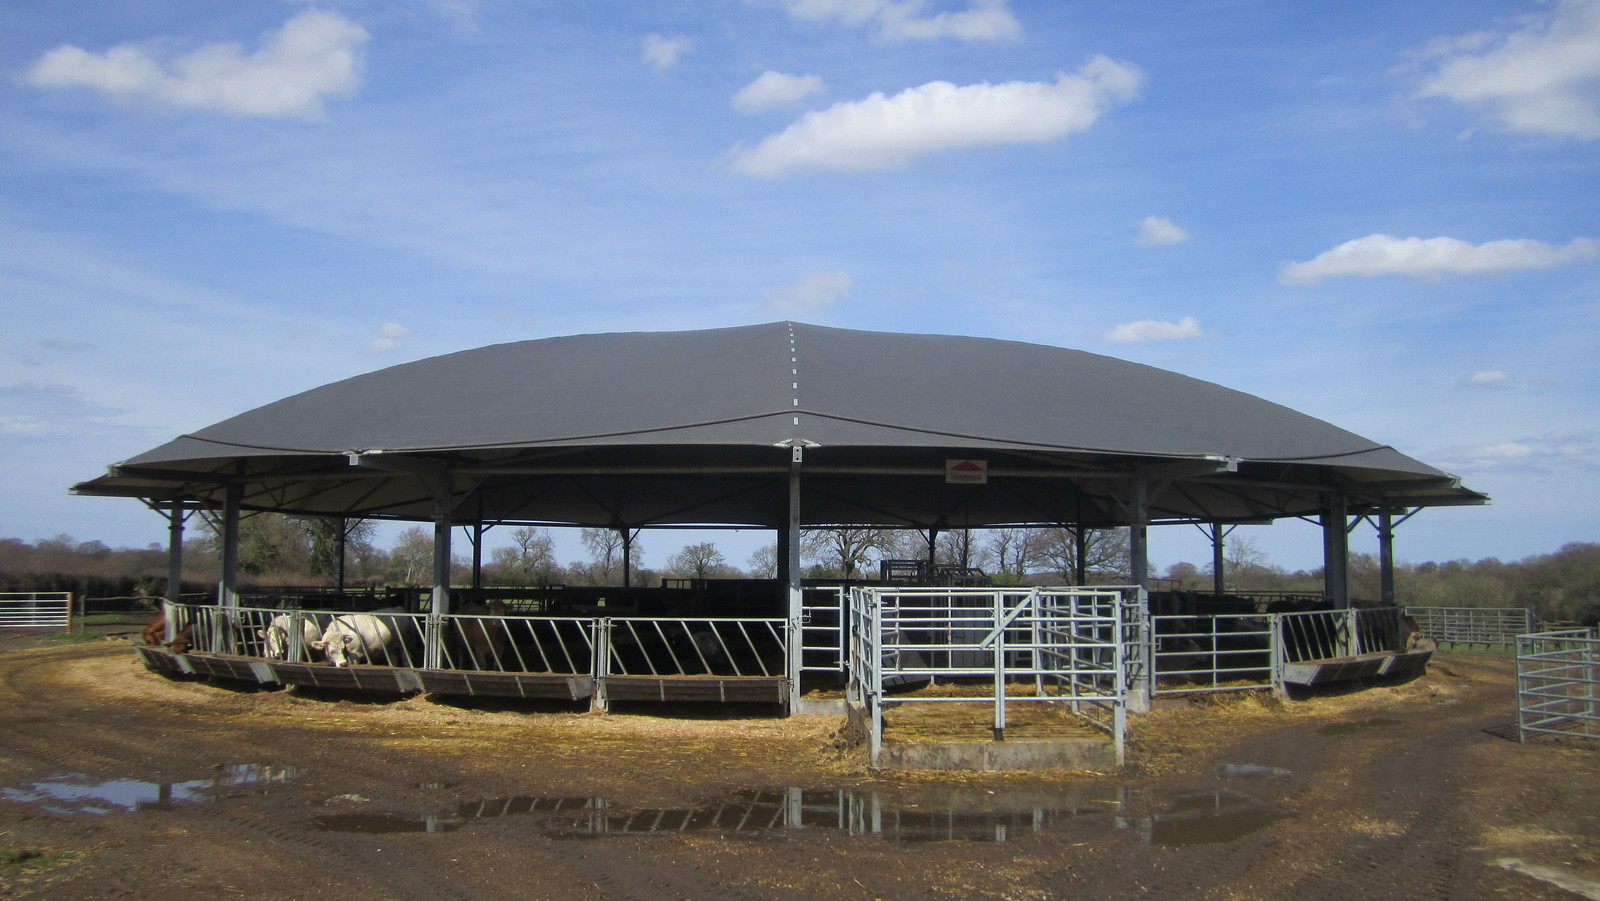 Circular Cattle Shelter